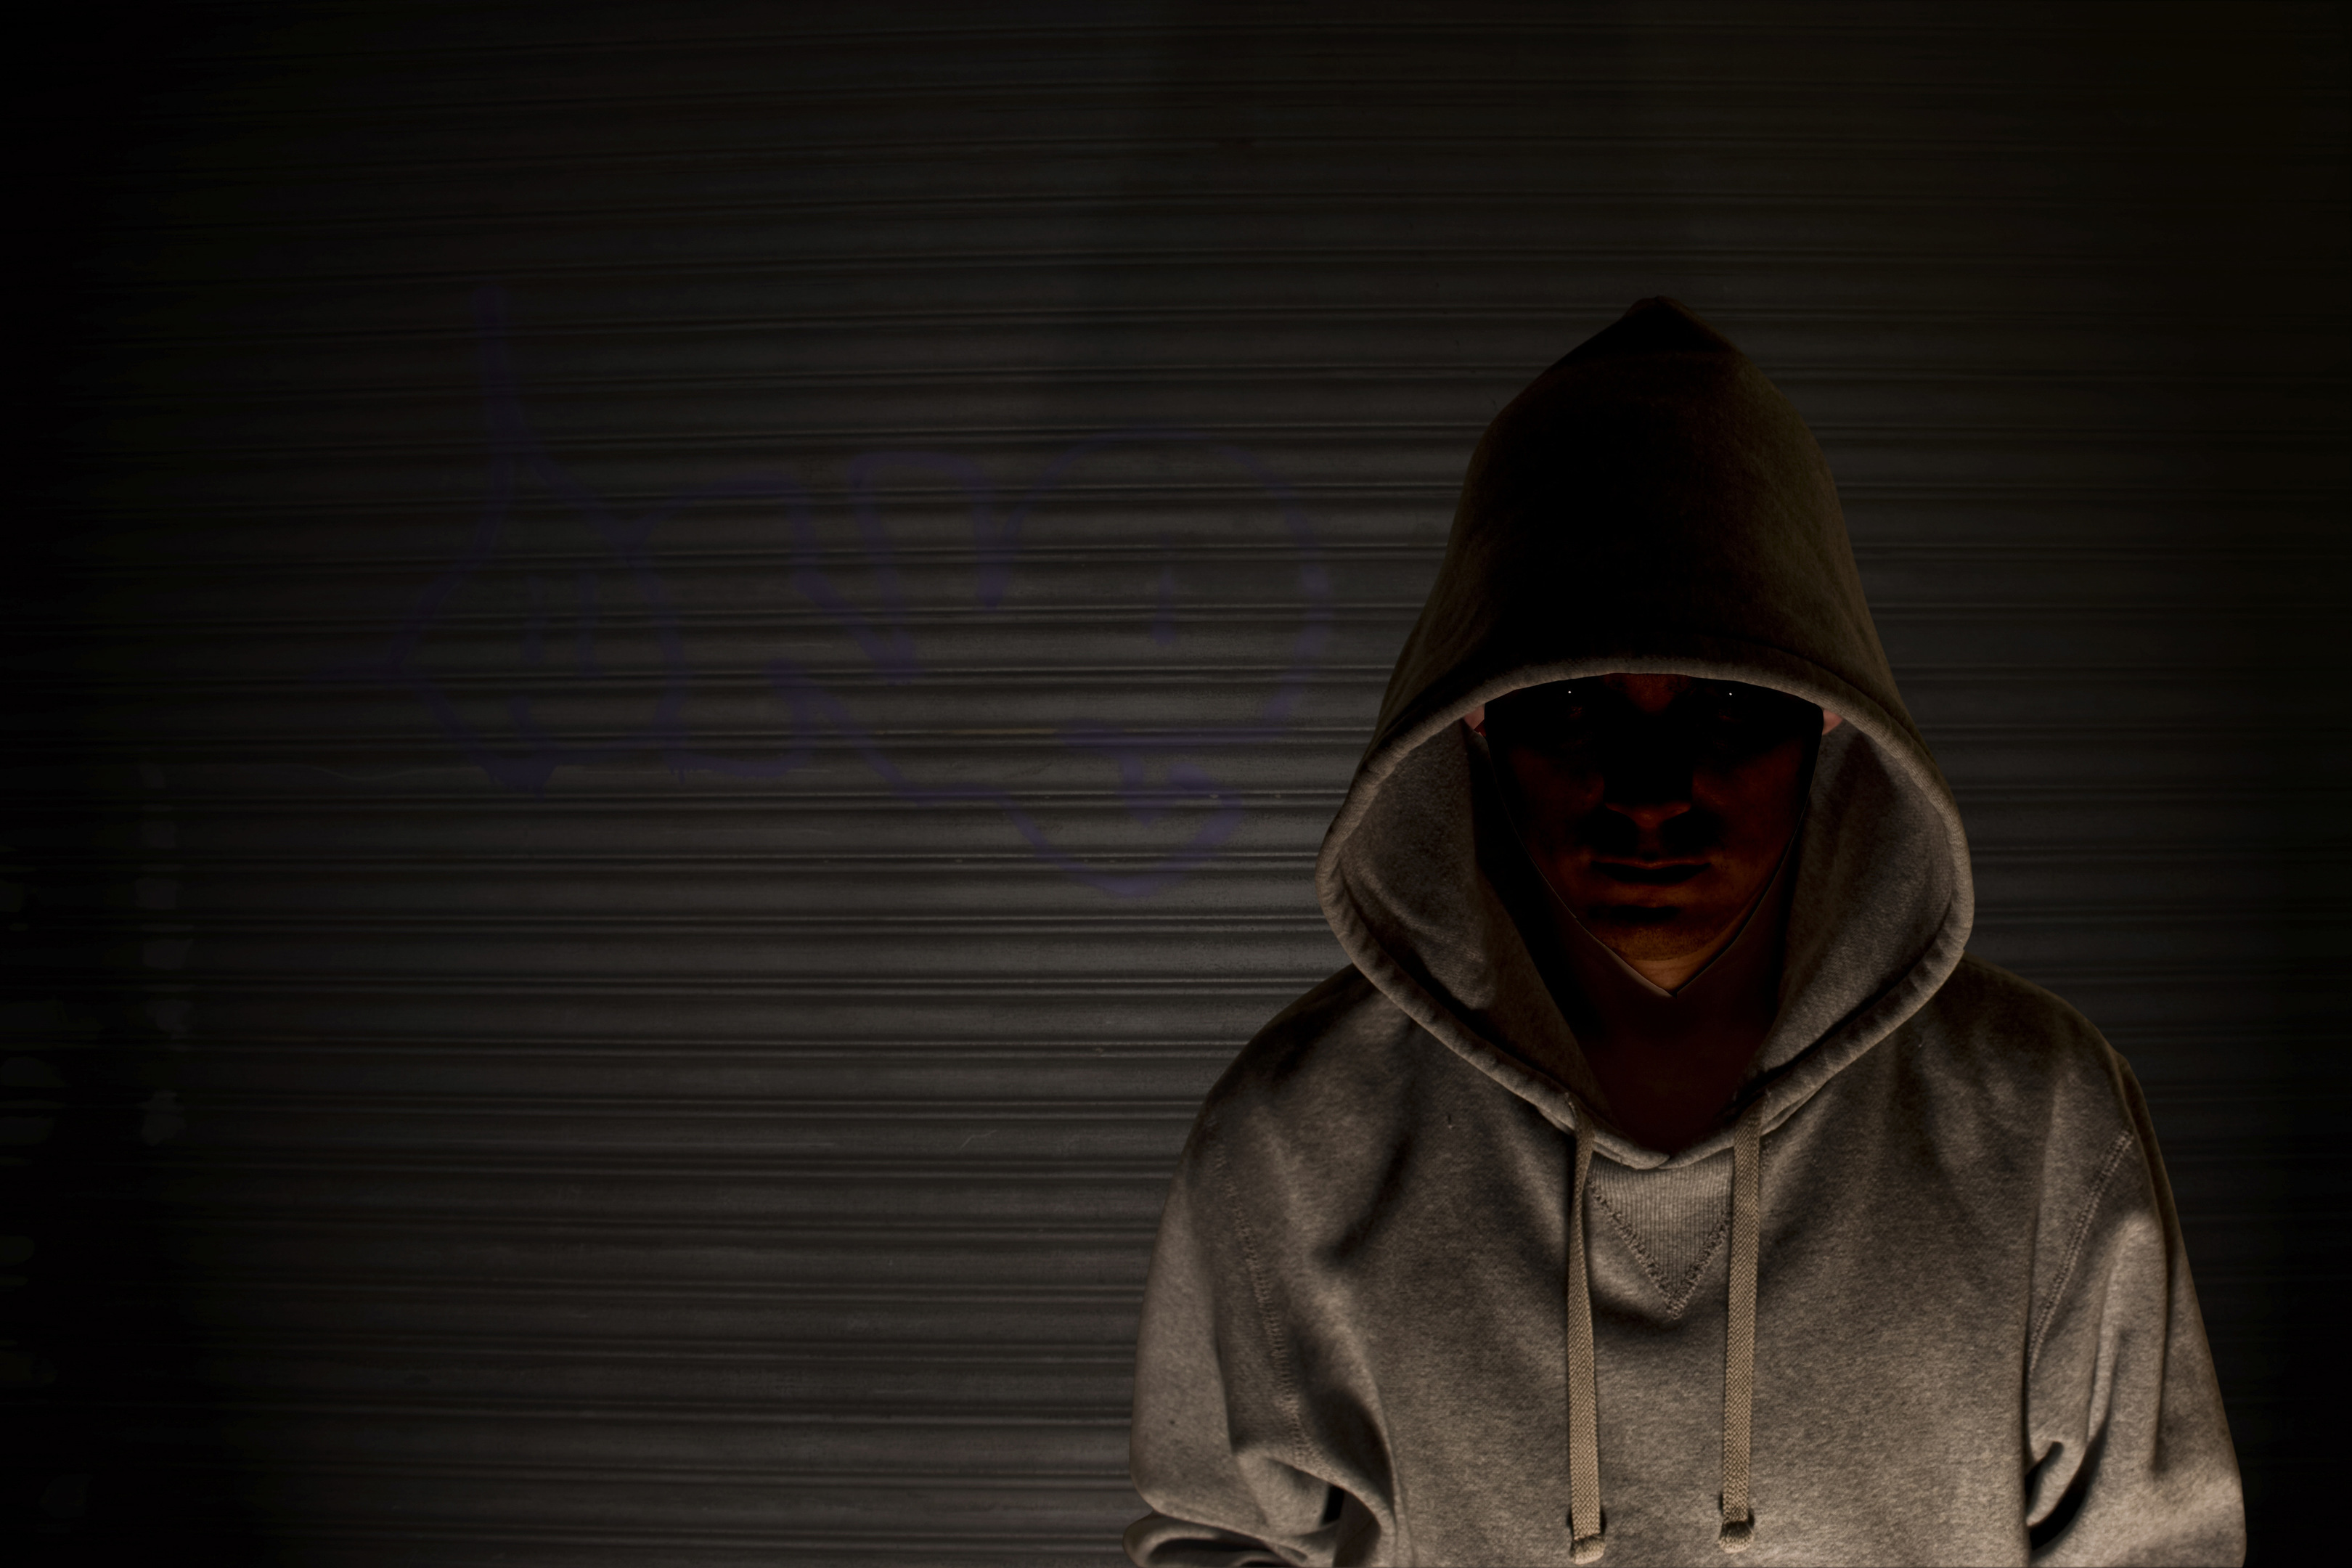 A 'hoody' has long been the stereotype of juvenile crime